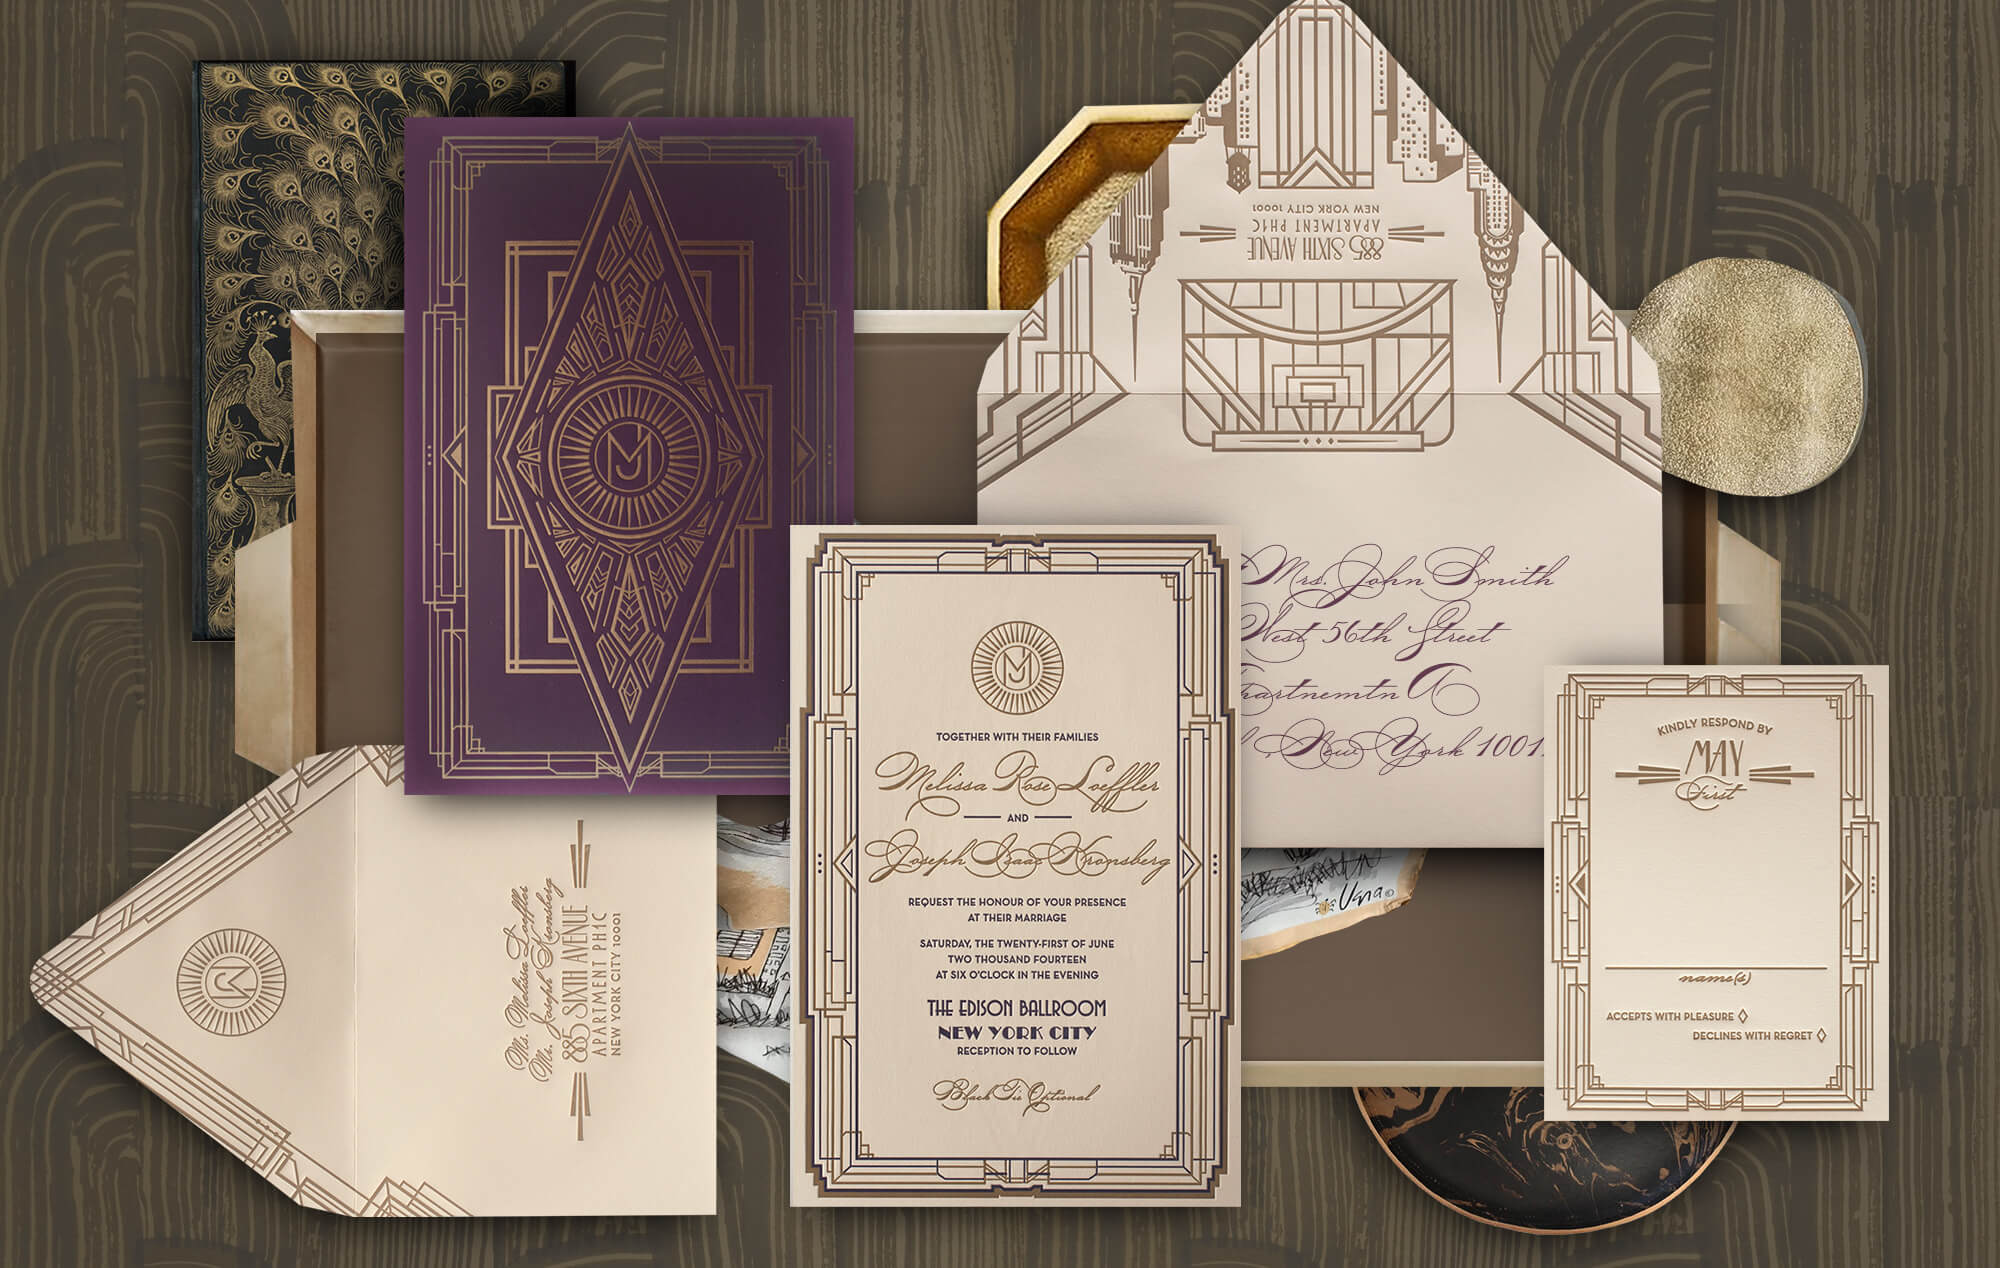 New York Art Deco wedding invitation